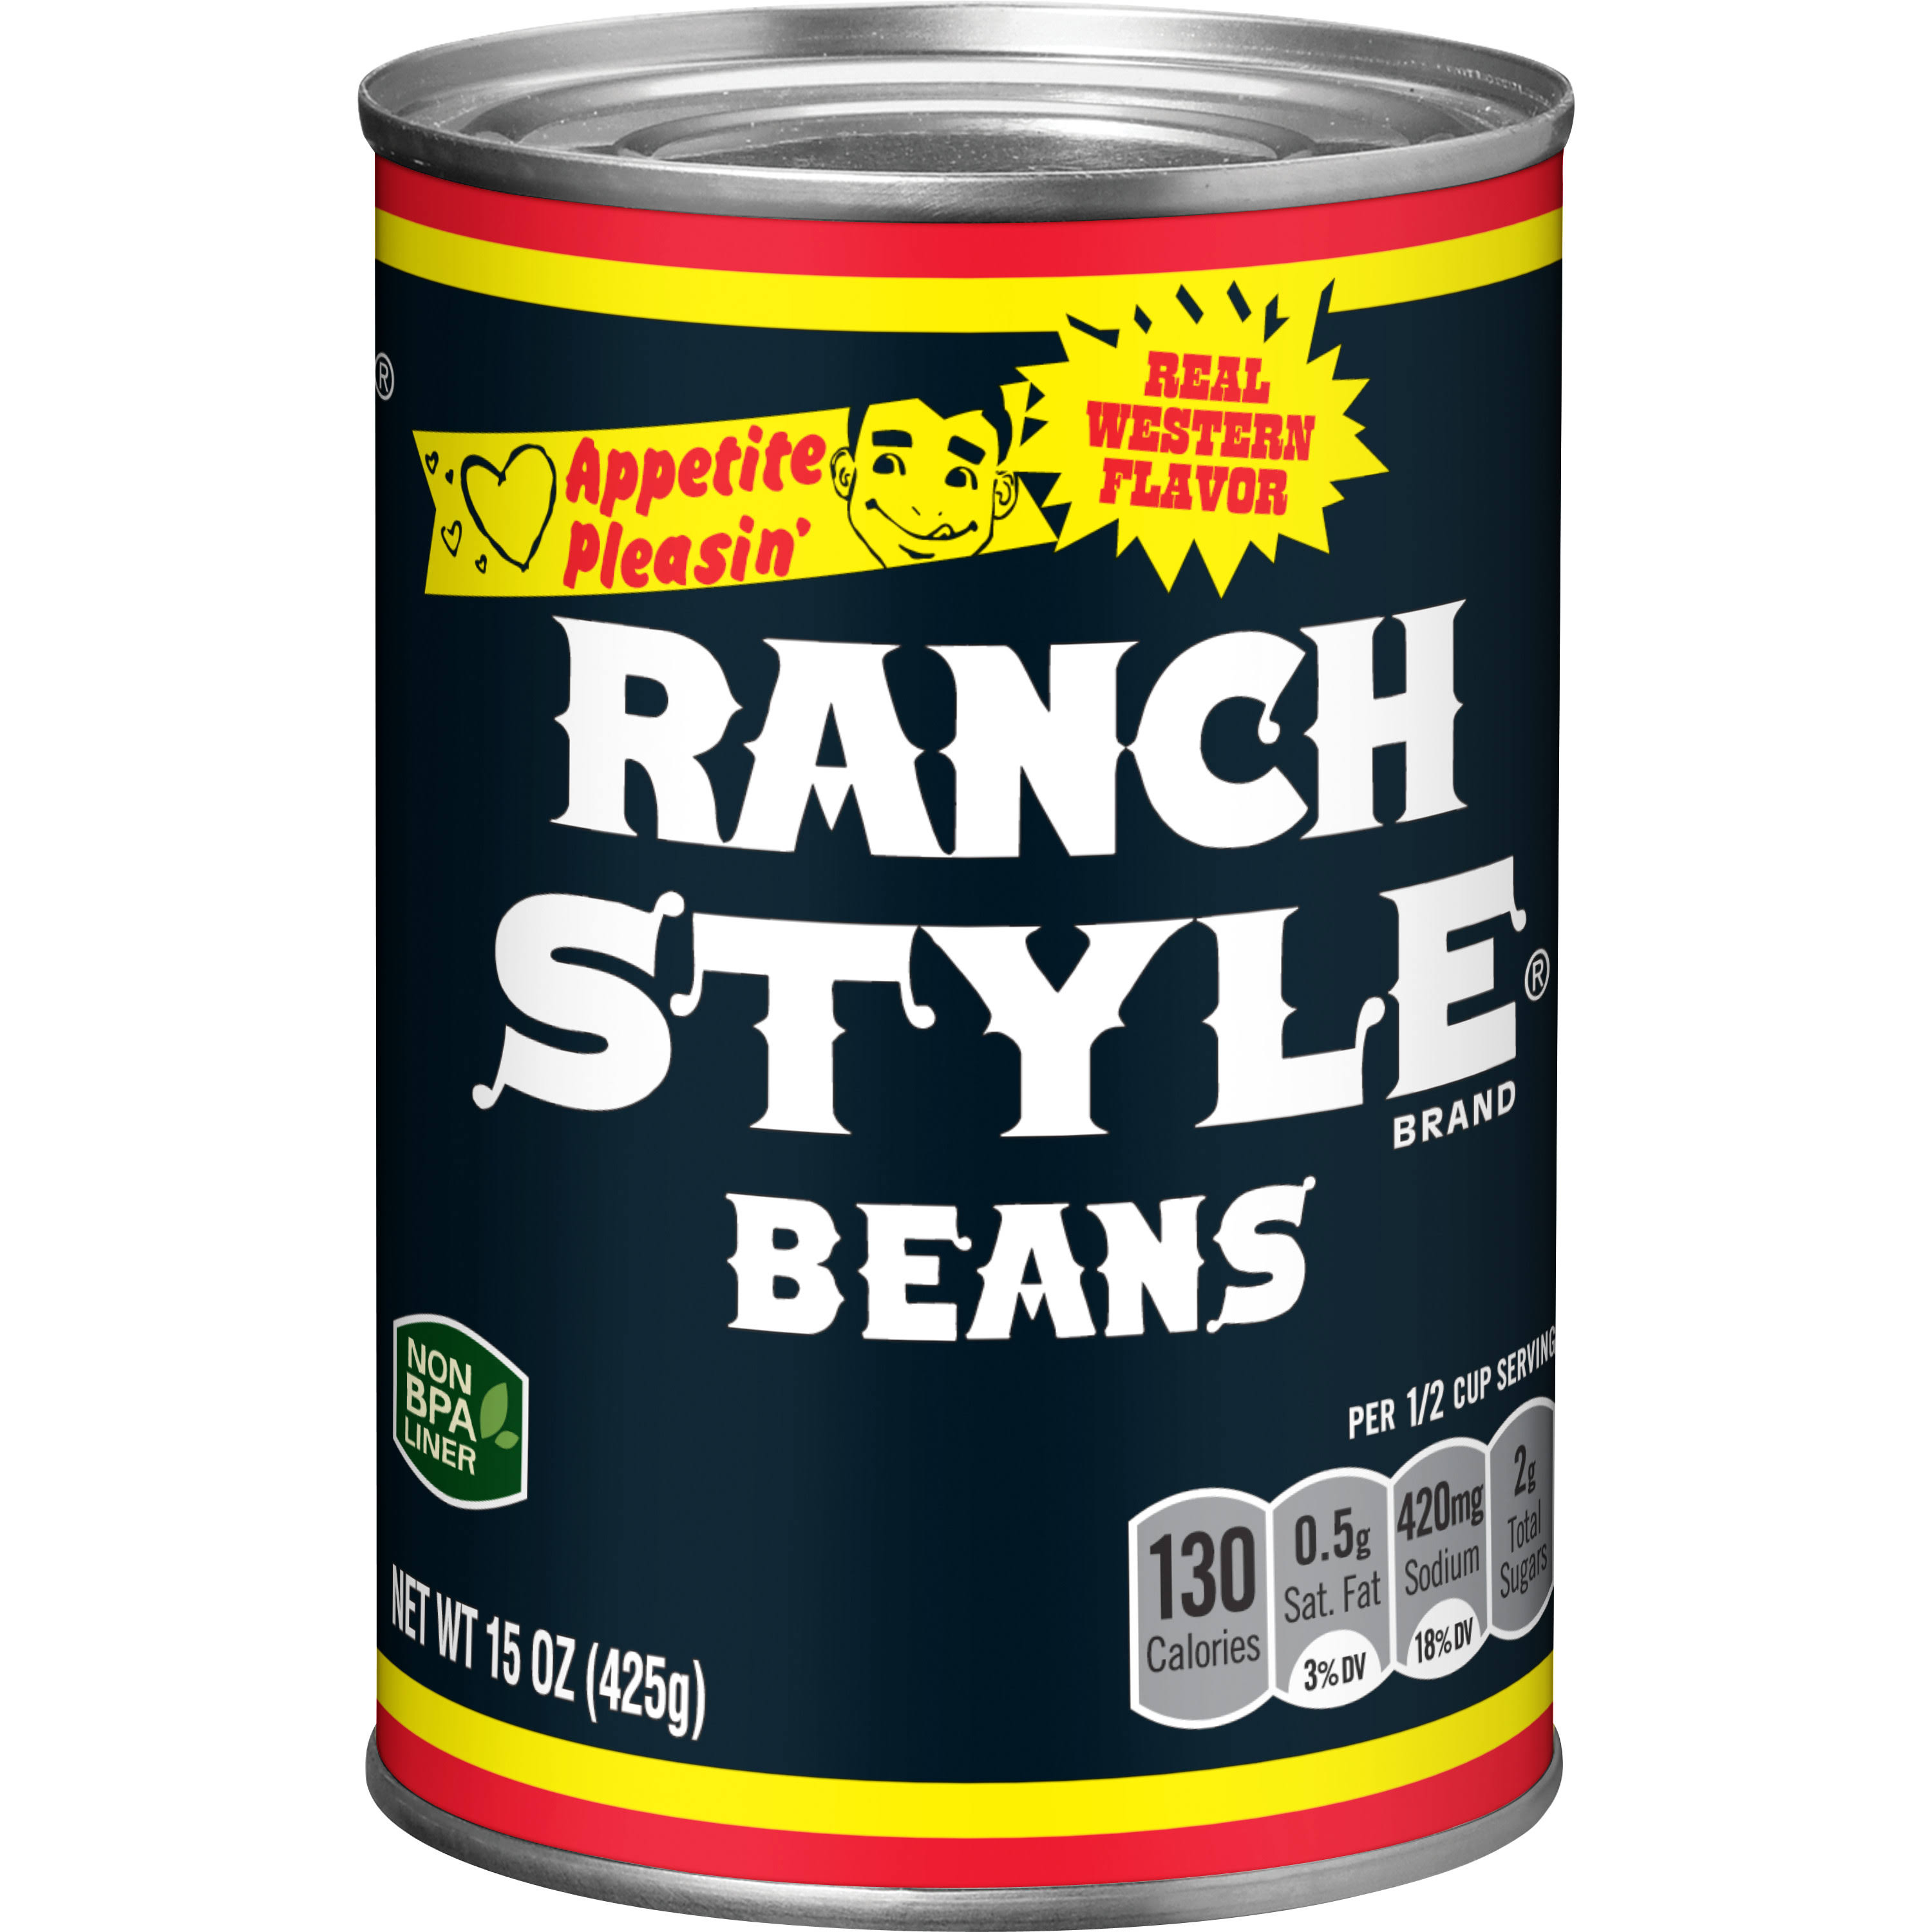 Ranch Style Beans - 15 oz